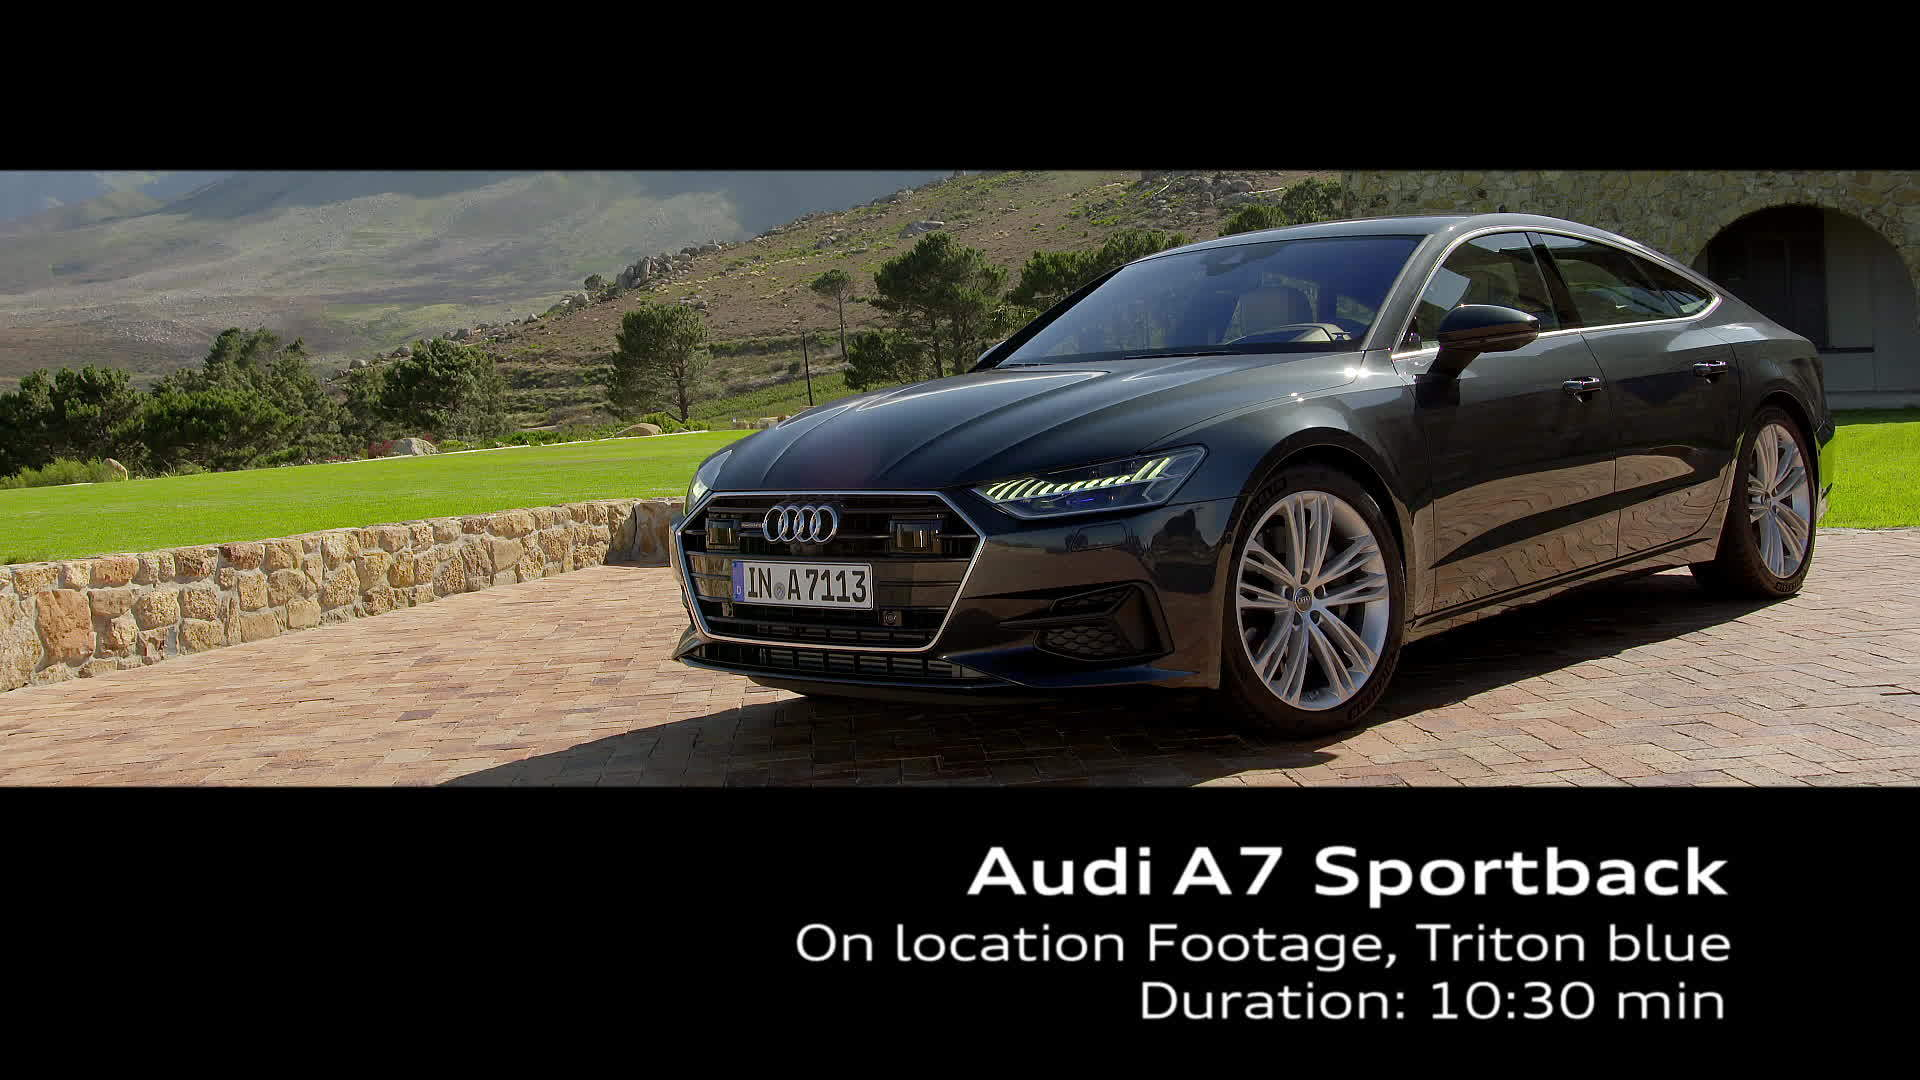 Audi A7 Sportback in Triton blue – on Location Footage Kapstadt